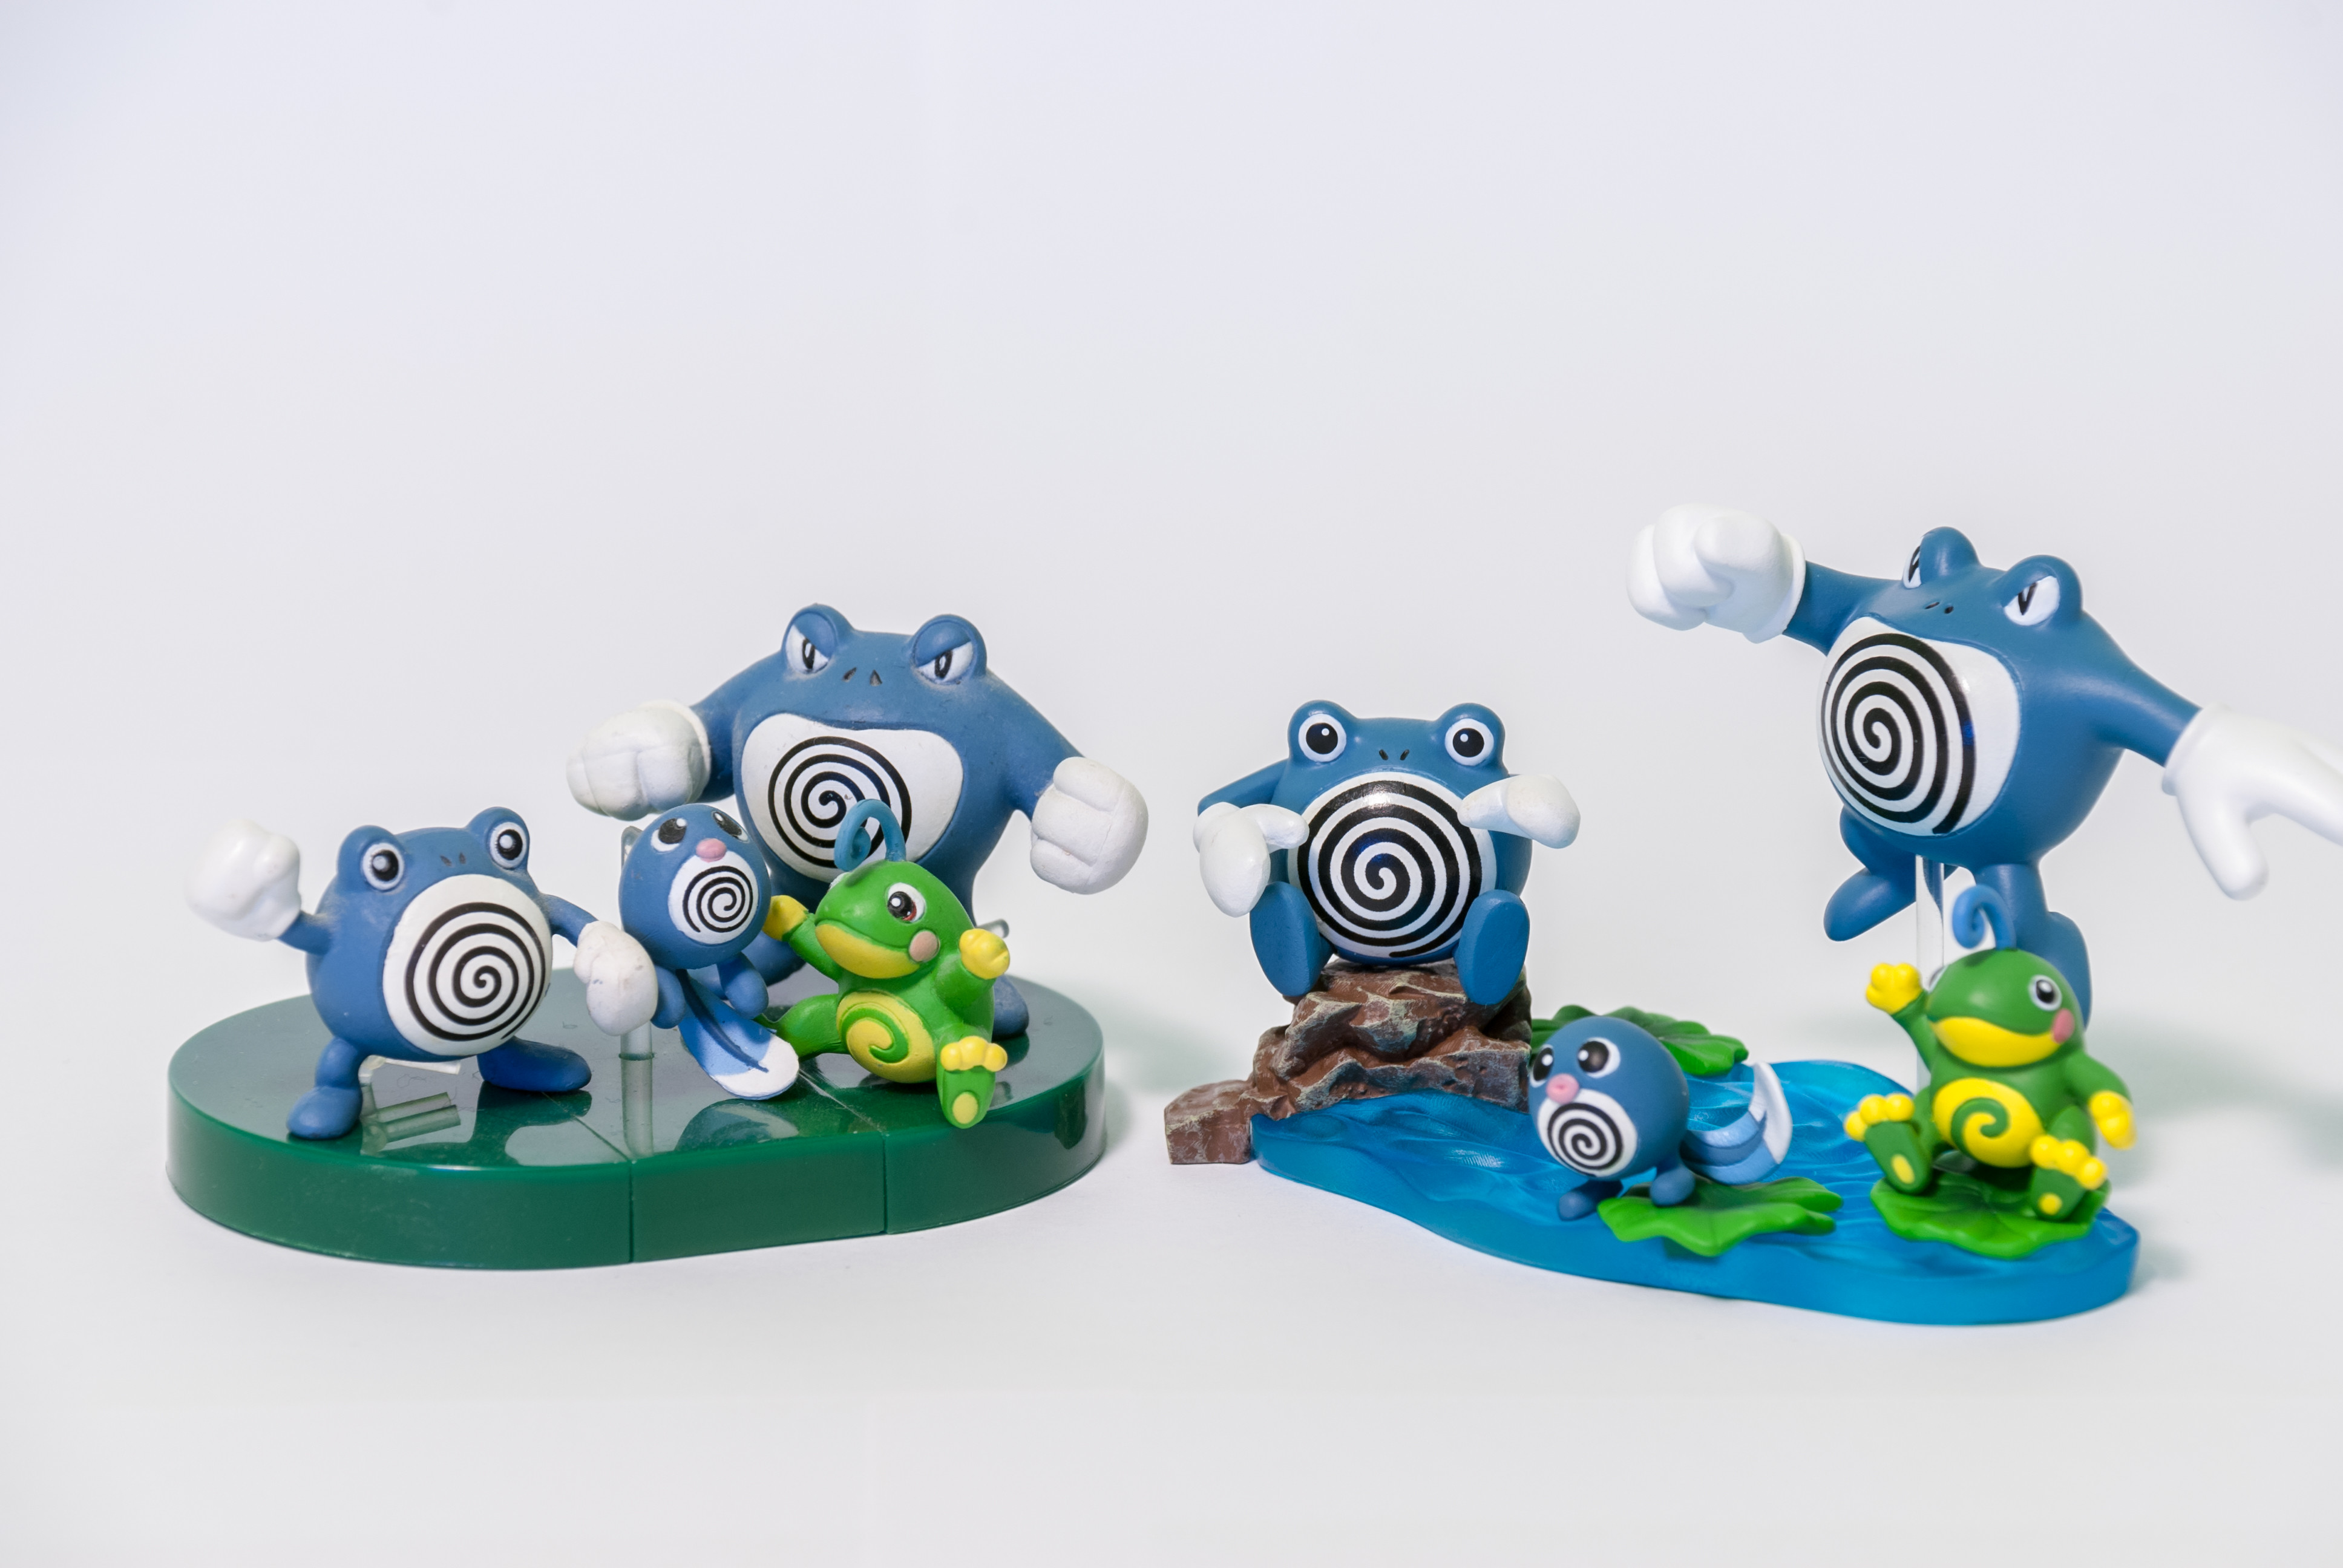 GSC 03: Poliwag/Poliwhirl/Poliwrath/Politoad and DS Studio 17: Poliwag/Poliwhirl/Poliwrath/Politoad